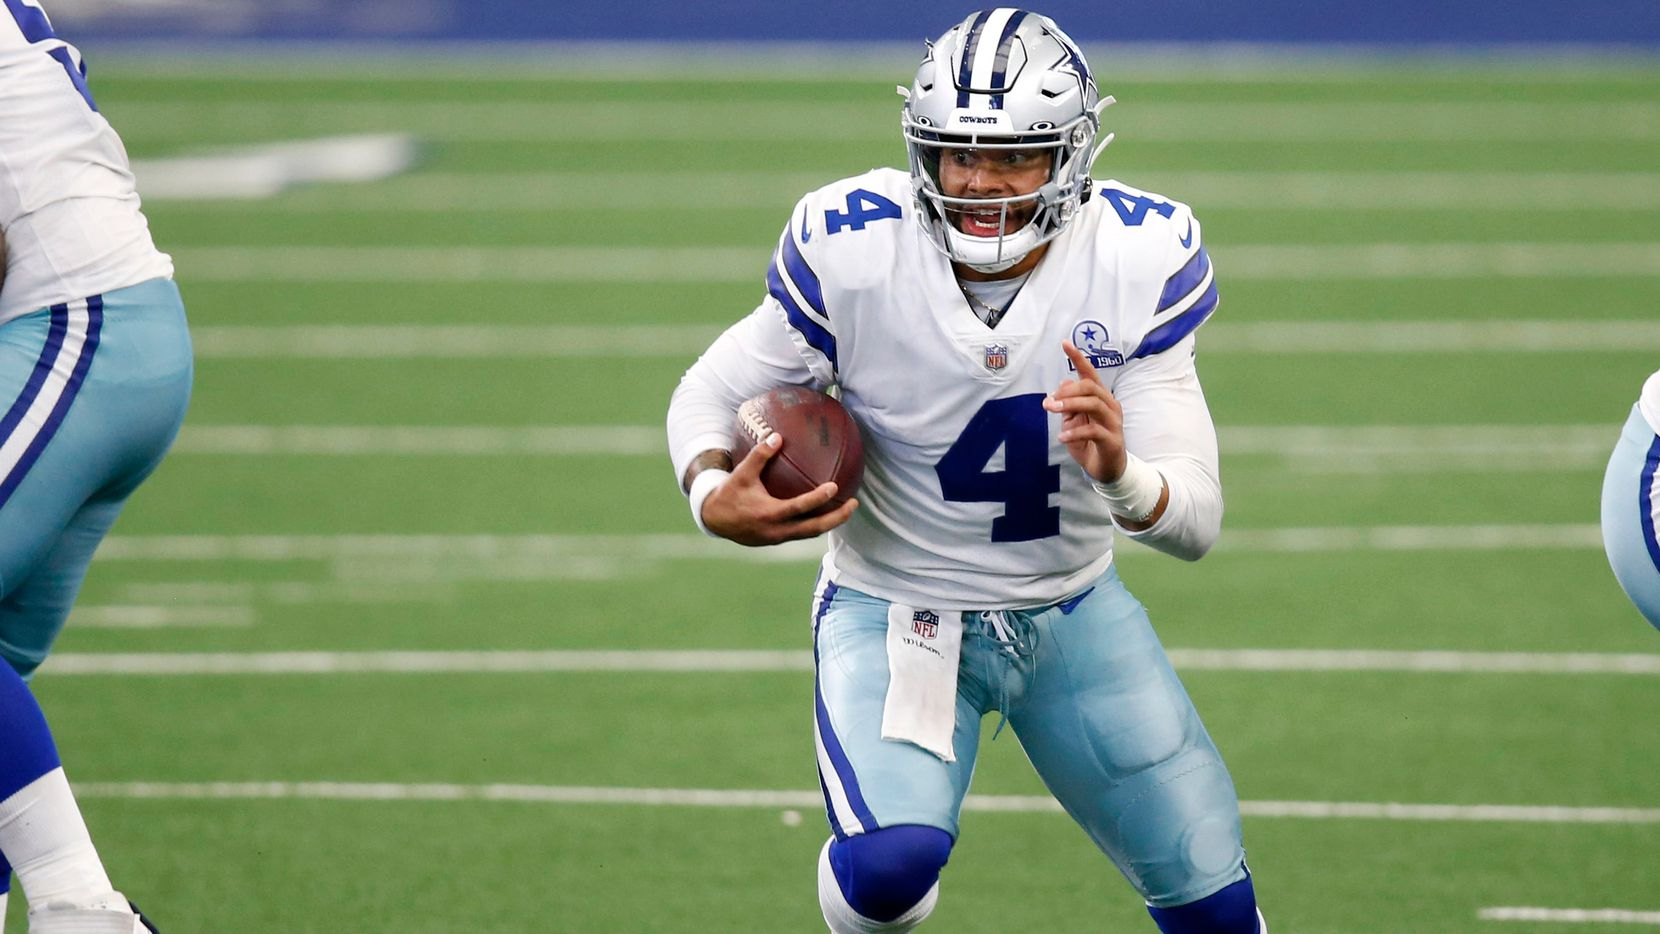 Dallas Cowboys quarterback Dak Prescott (4) runs up the field during second half of play against the Atlanta Falcons in the home opener at AT&T Stadium in Arlington, Texas on Sunday, September 20, 2020. Dallas Cowboys defeated the Atlanta Falcons 40-39.